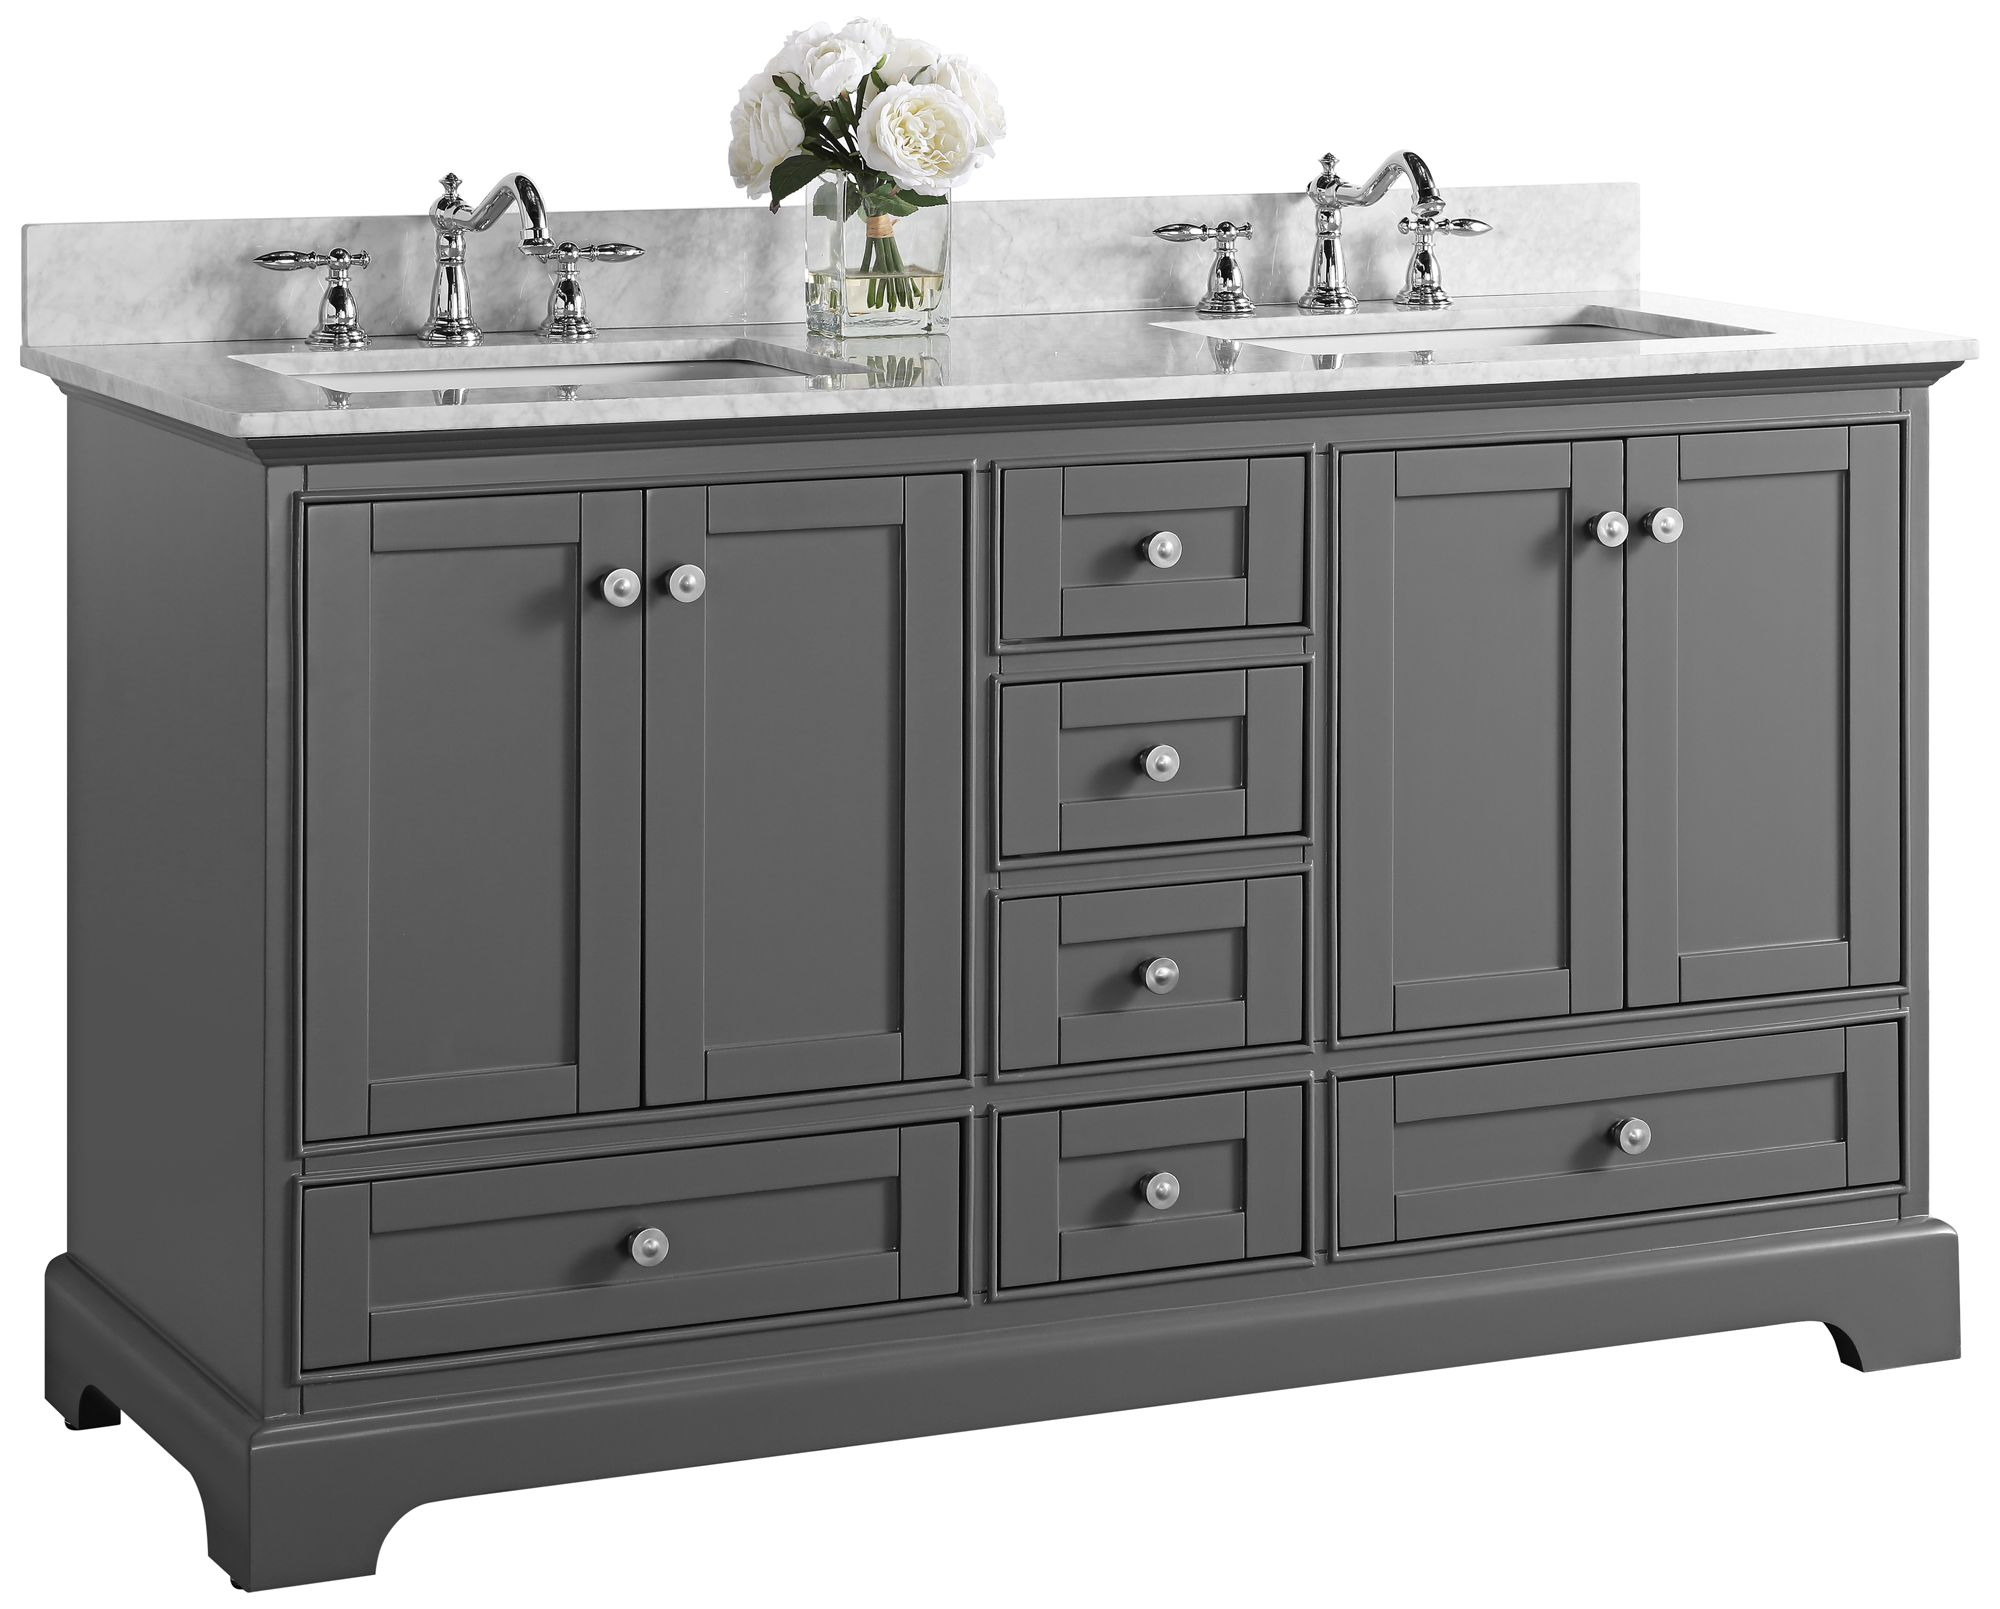 audrey sapphire gray 60 white marble double sink vanity